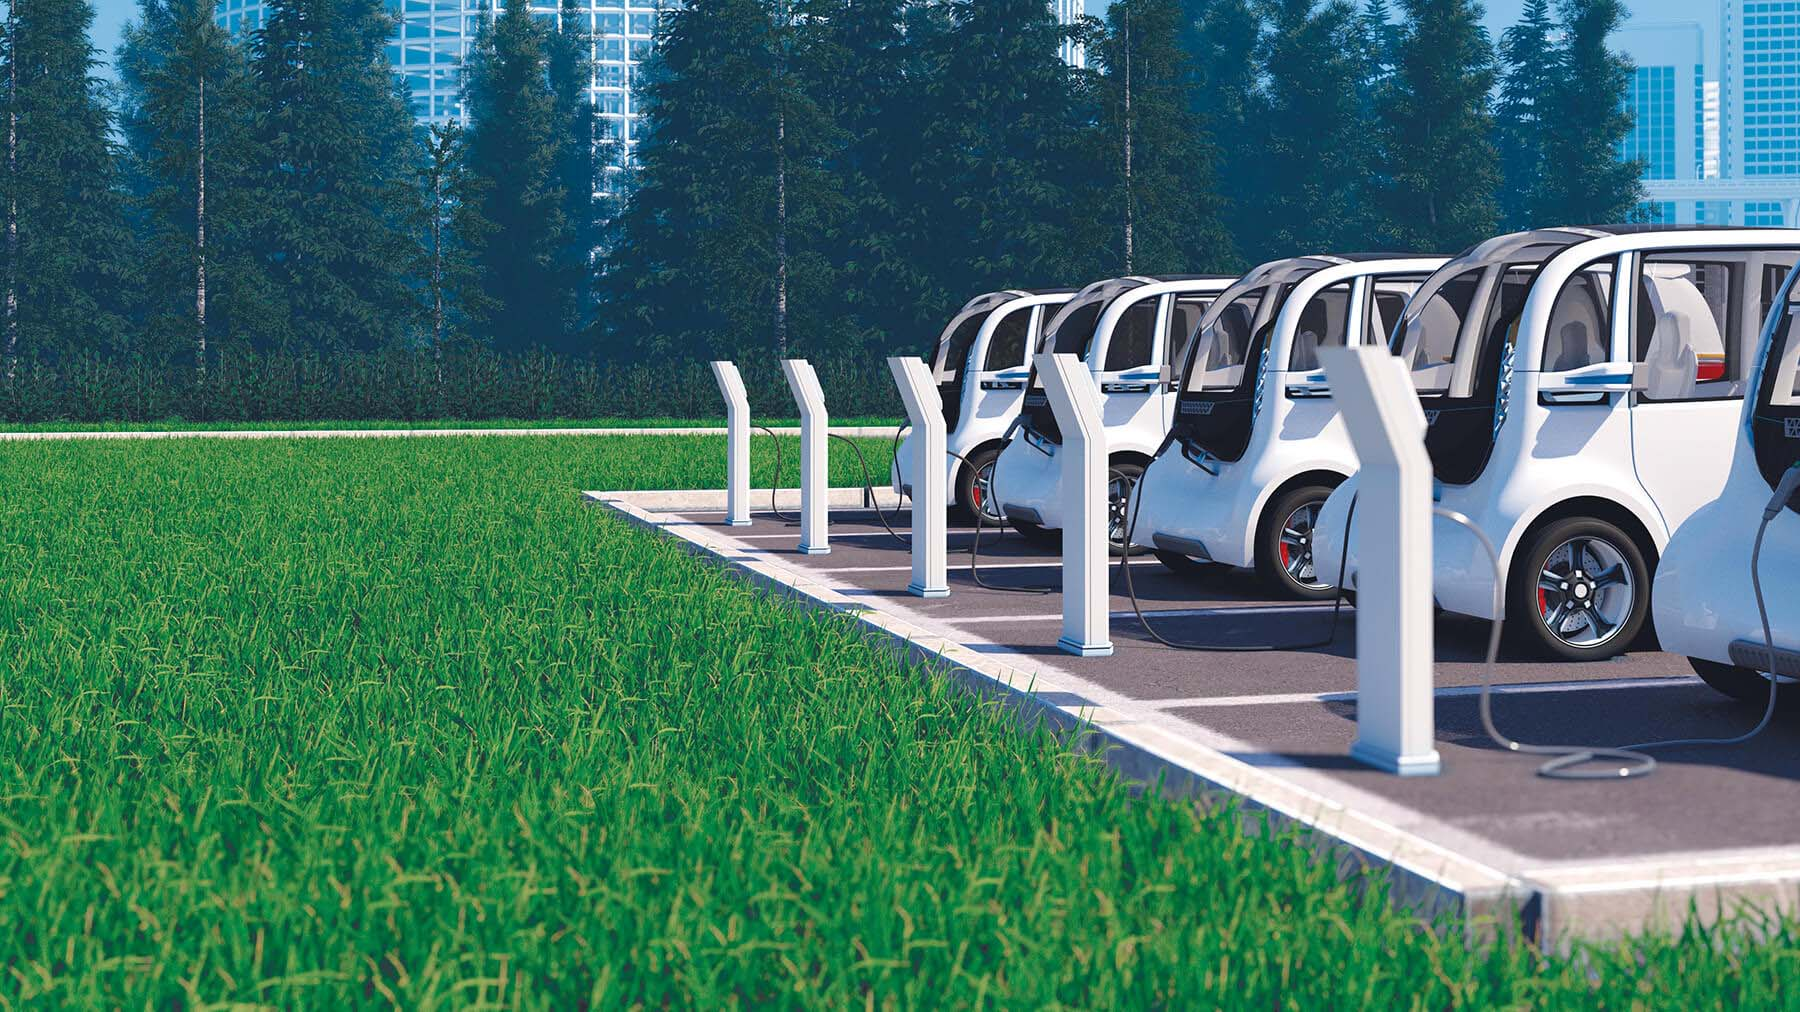 Electric vehicles parked next to their charging stations